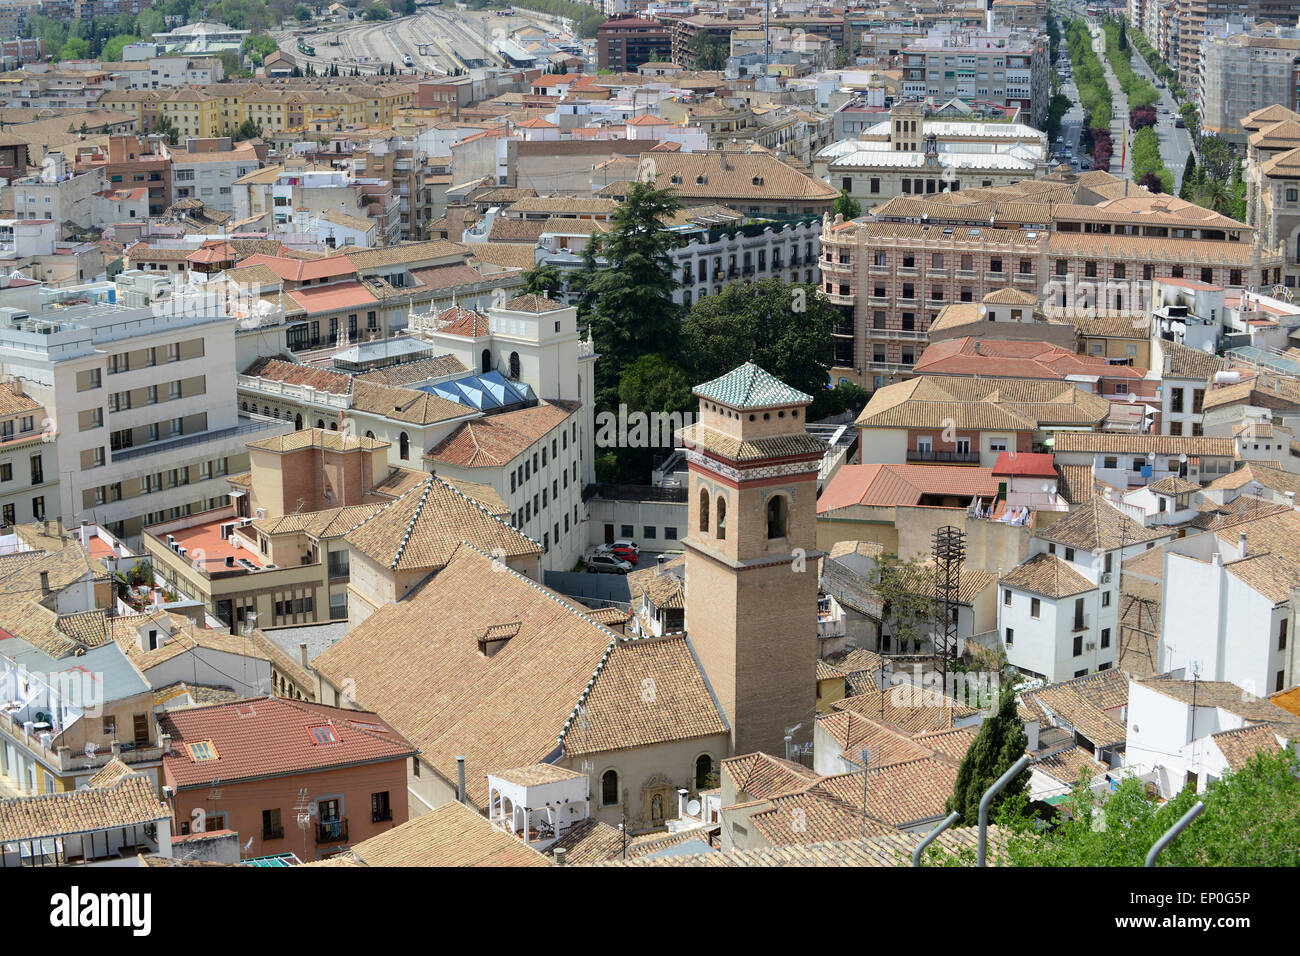 Residential area house houses apartments rooftops Granada Spain - Stock Image